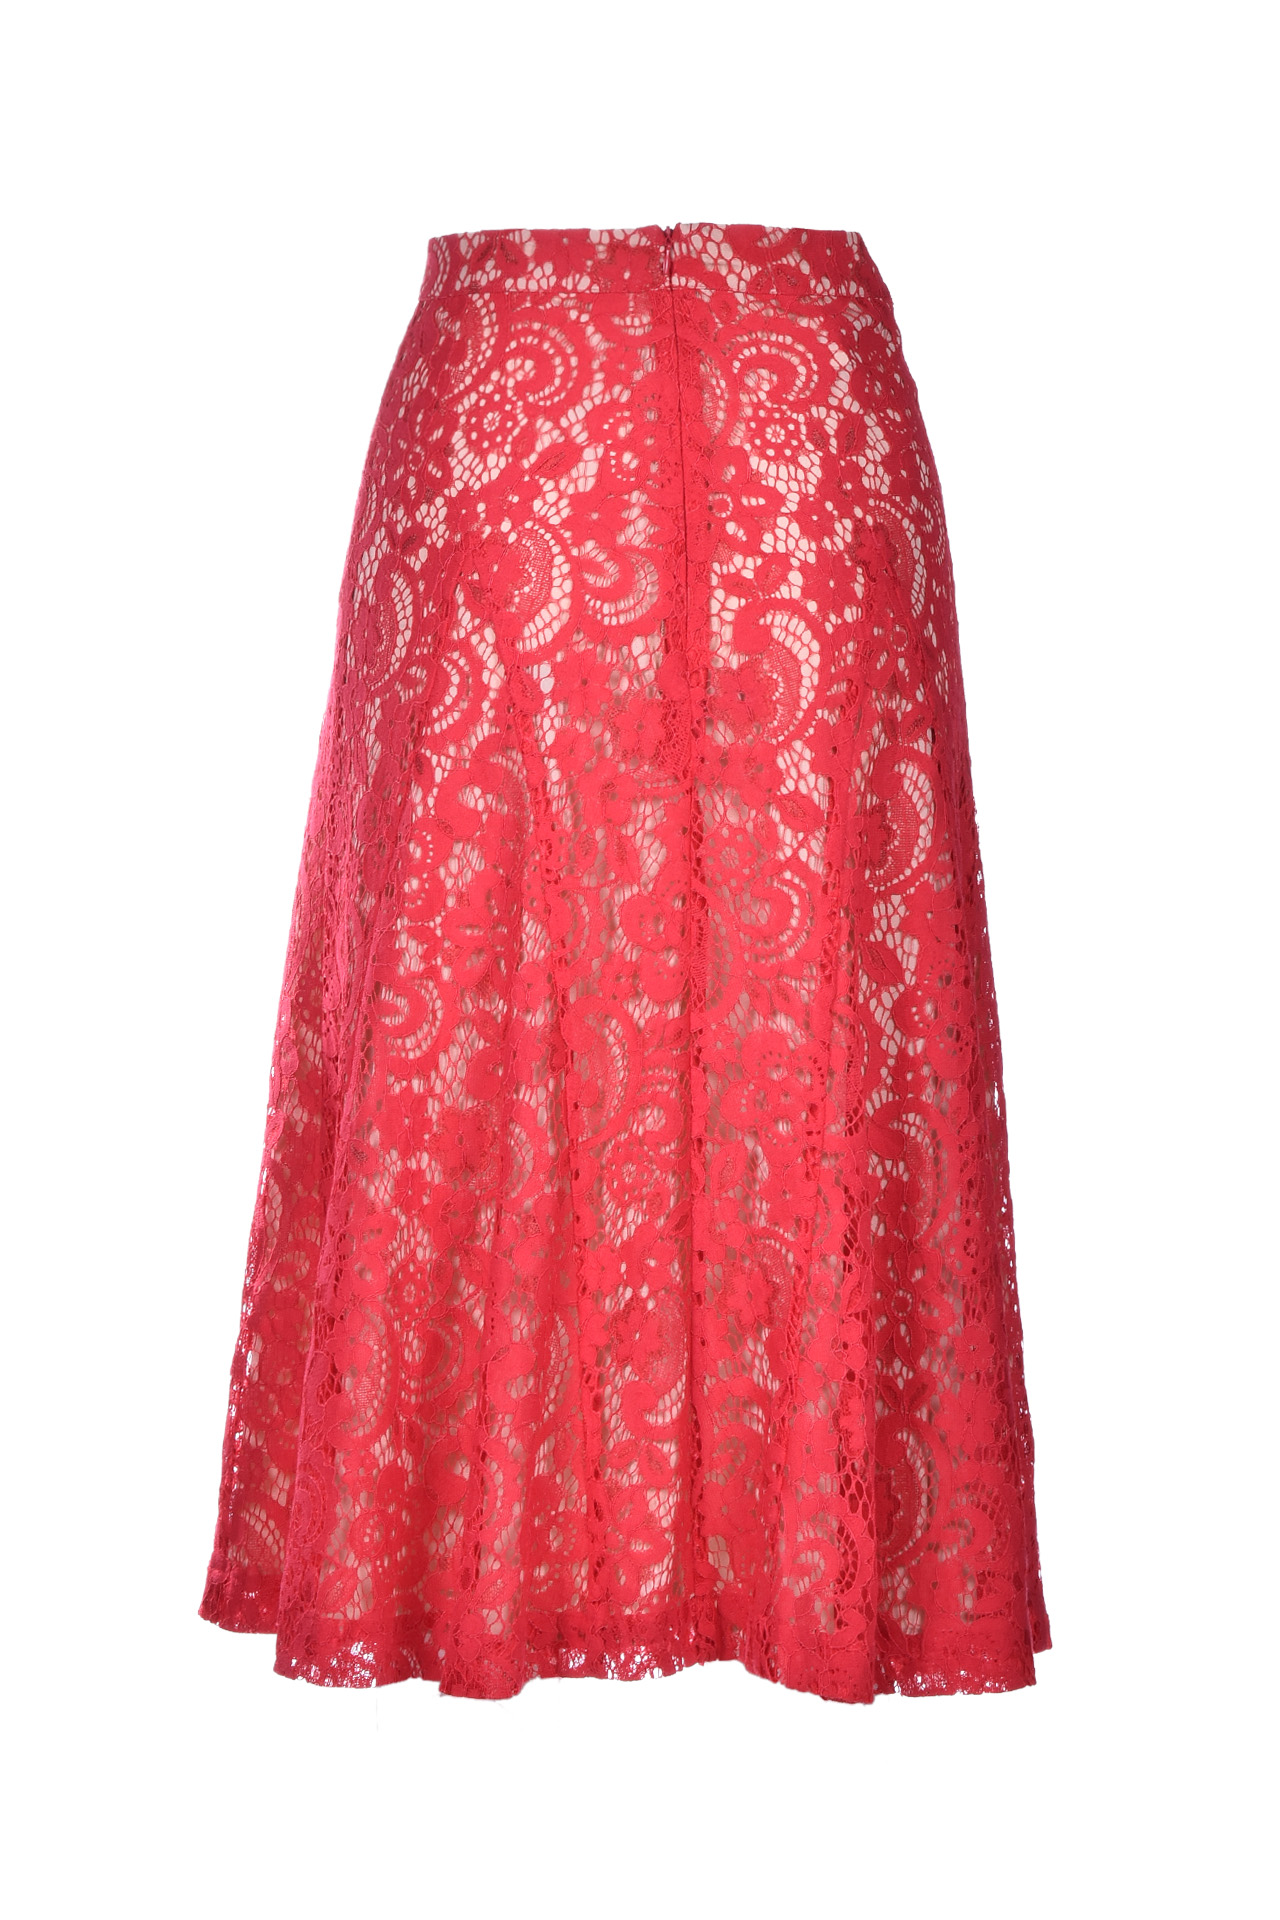 flavie lace midi skirt - poppy SEMICOUTURE | Skirts | Y0SM03D09-0